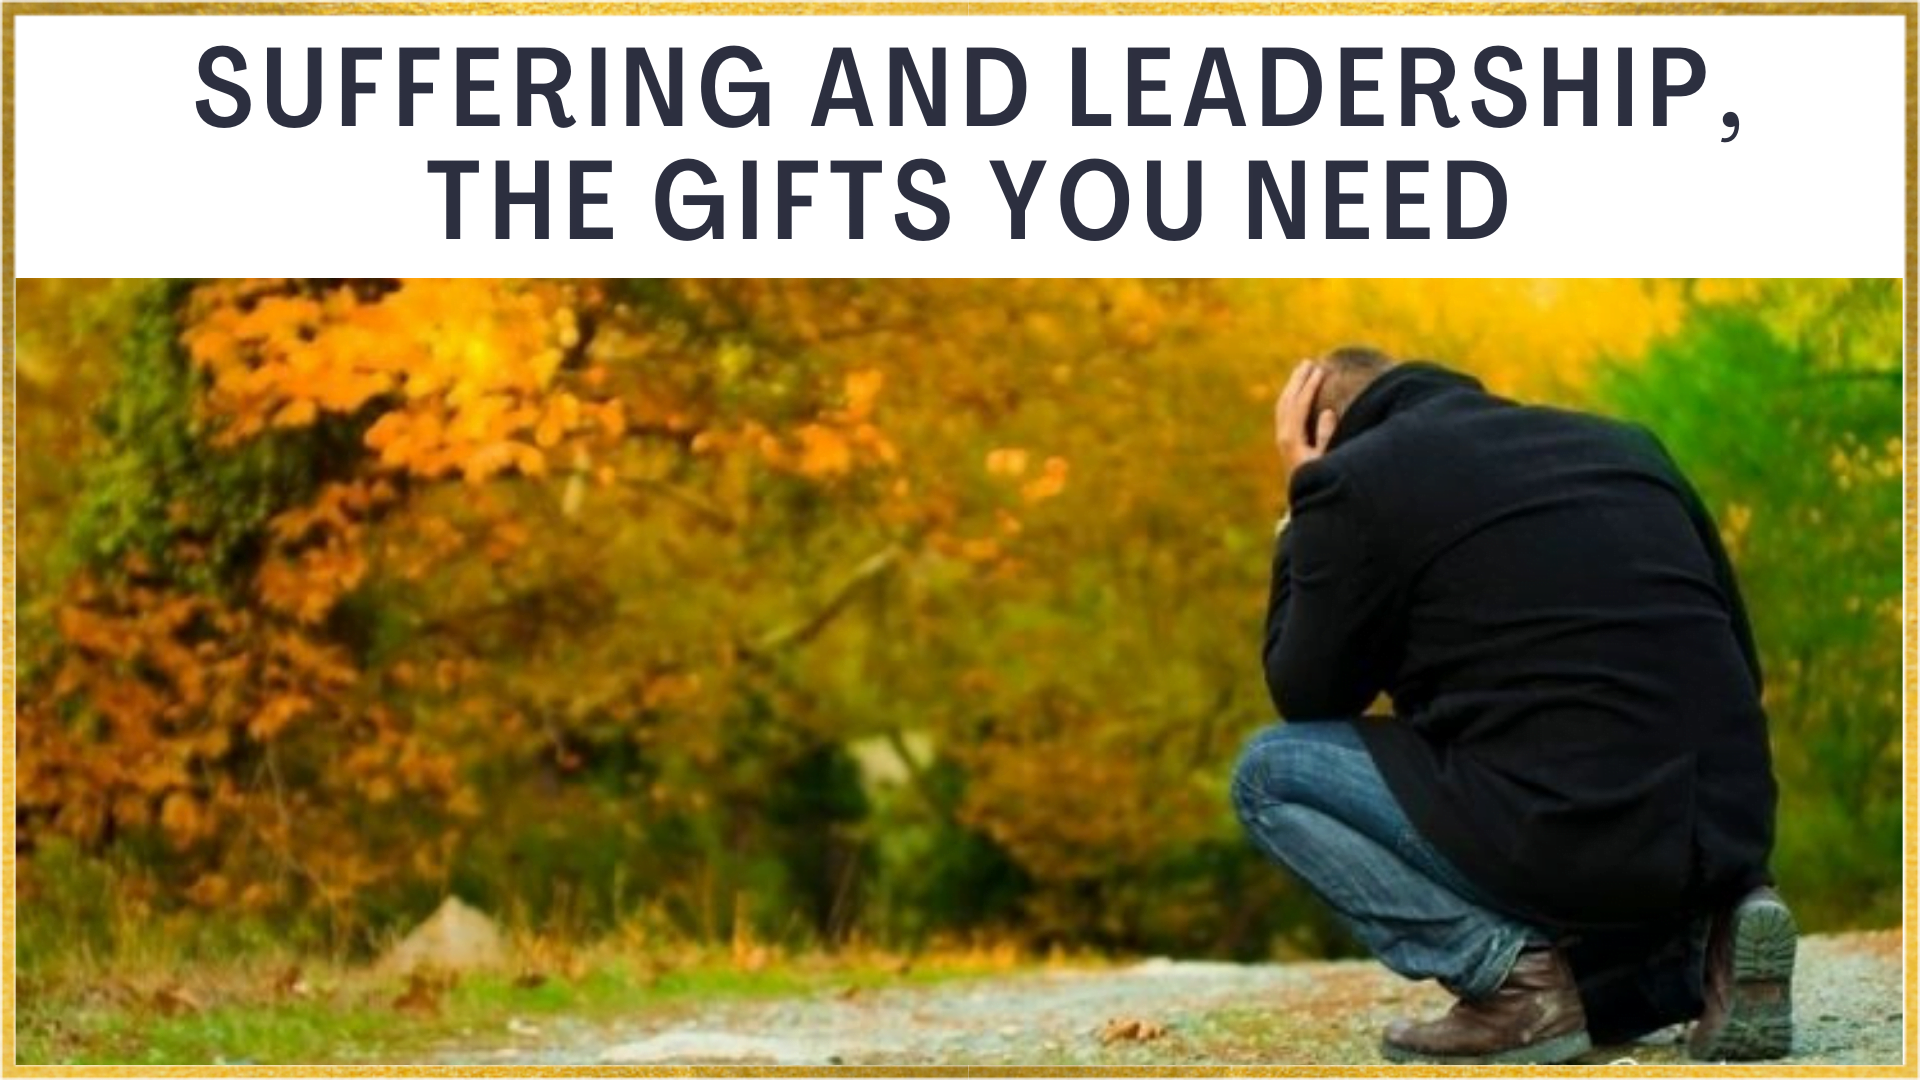 Suffering and Leadership, the Gifts You Need